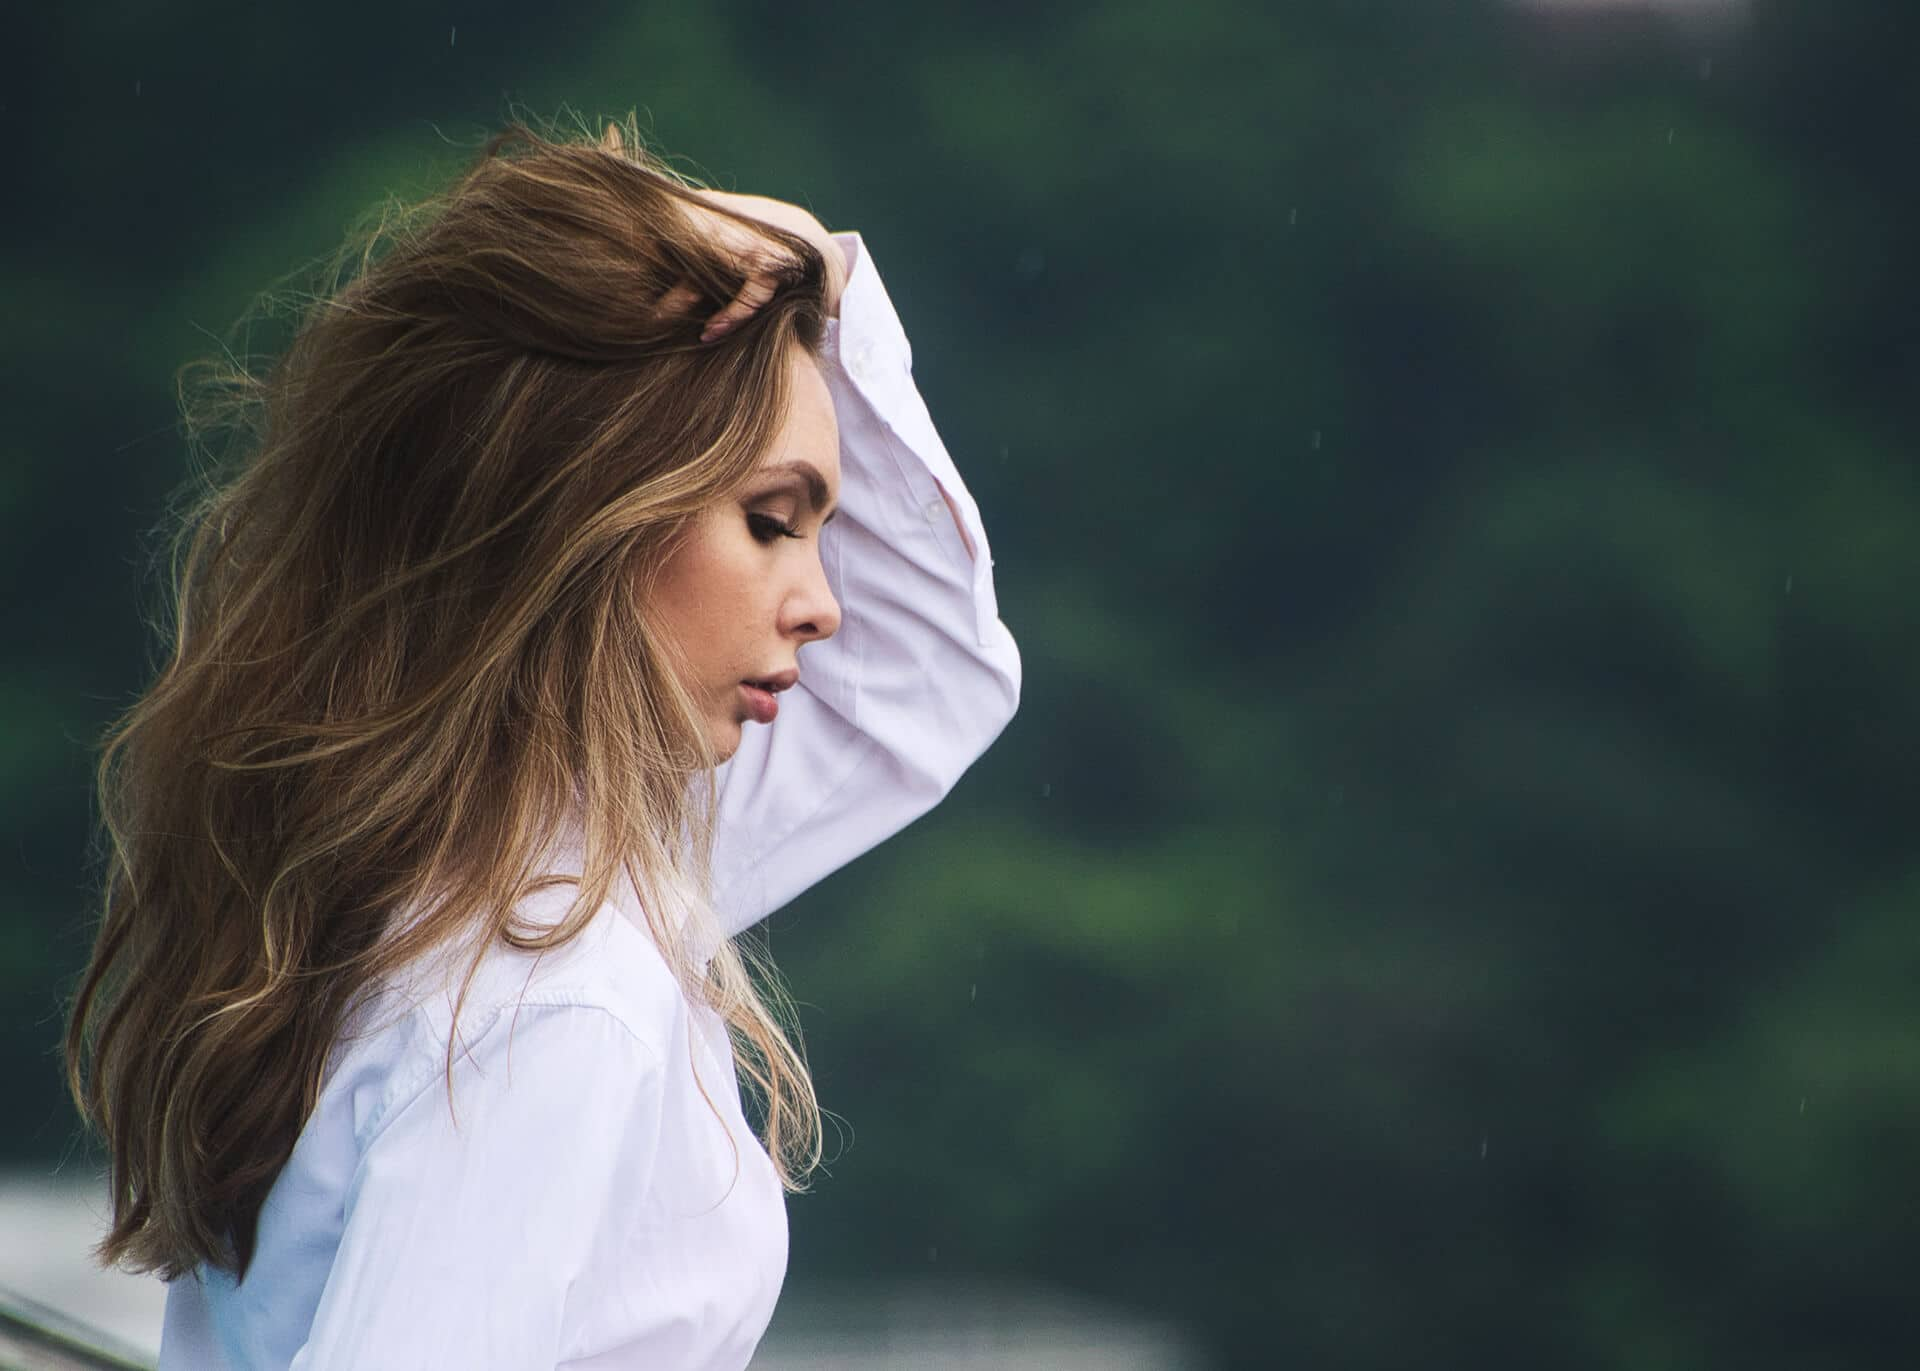 woman contemplating codependency recovery